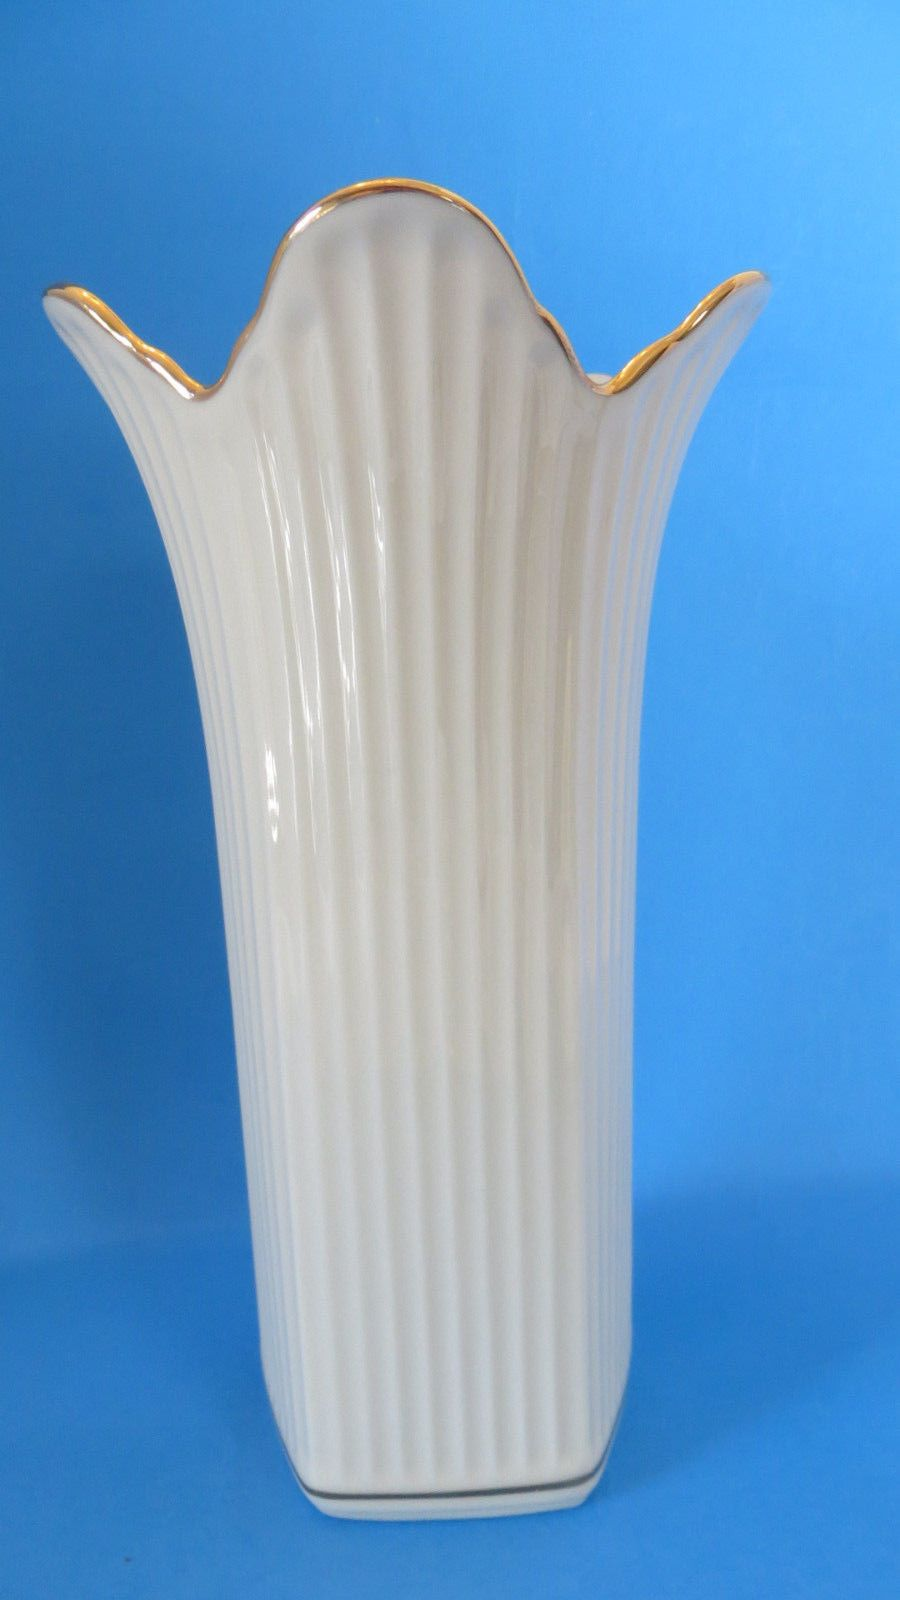 Lenox porcelain vase in meridian collection porcelain lenox porcelain vase in meridian collection floridaeventfo Image collections